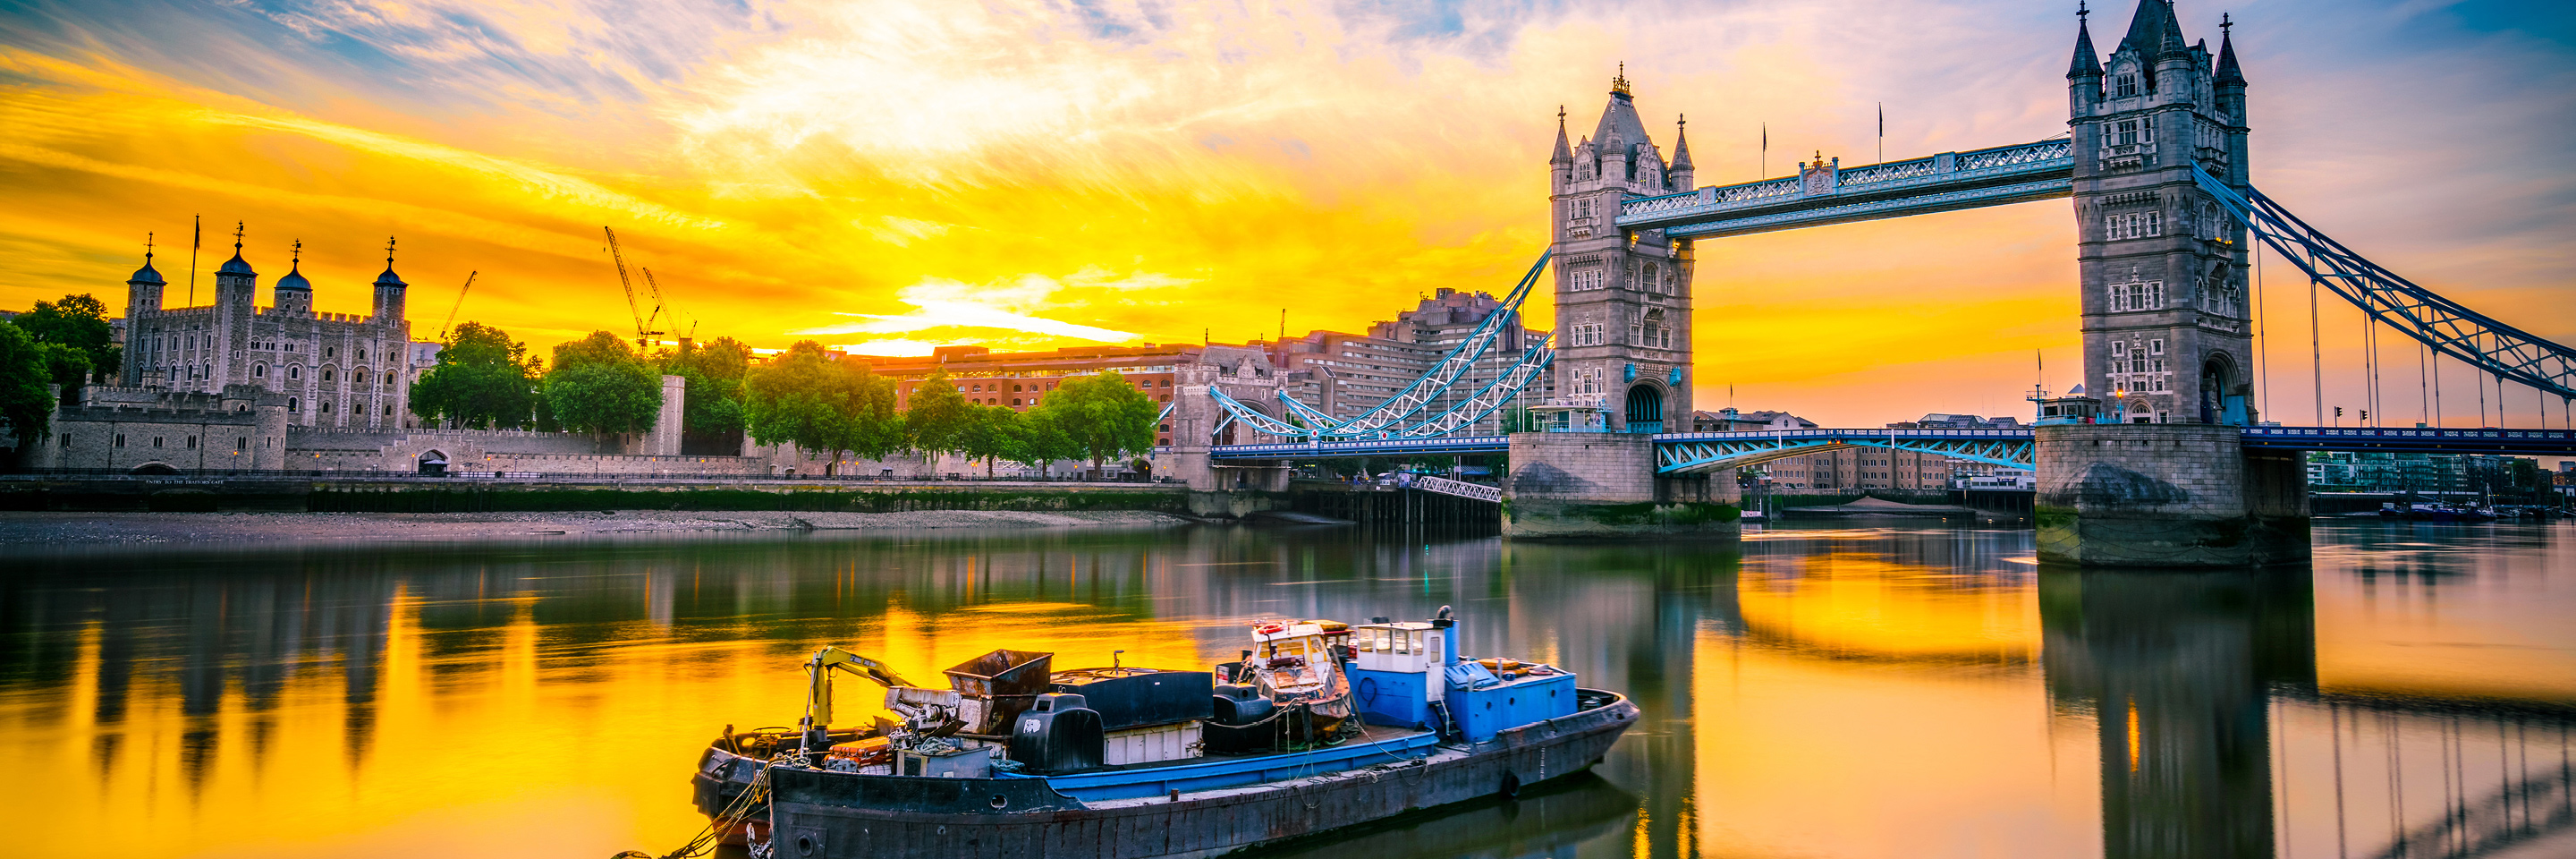 Paris to Normandy WWII Remembrance & History Cruise with 3  Nights in London